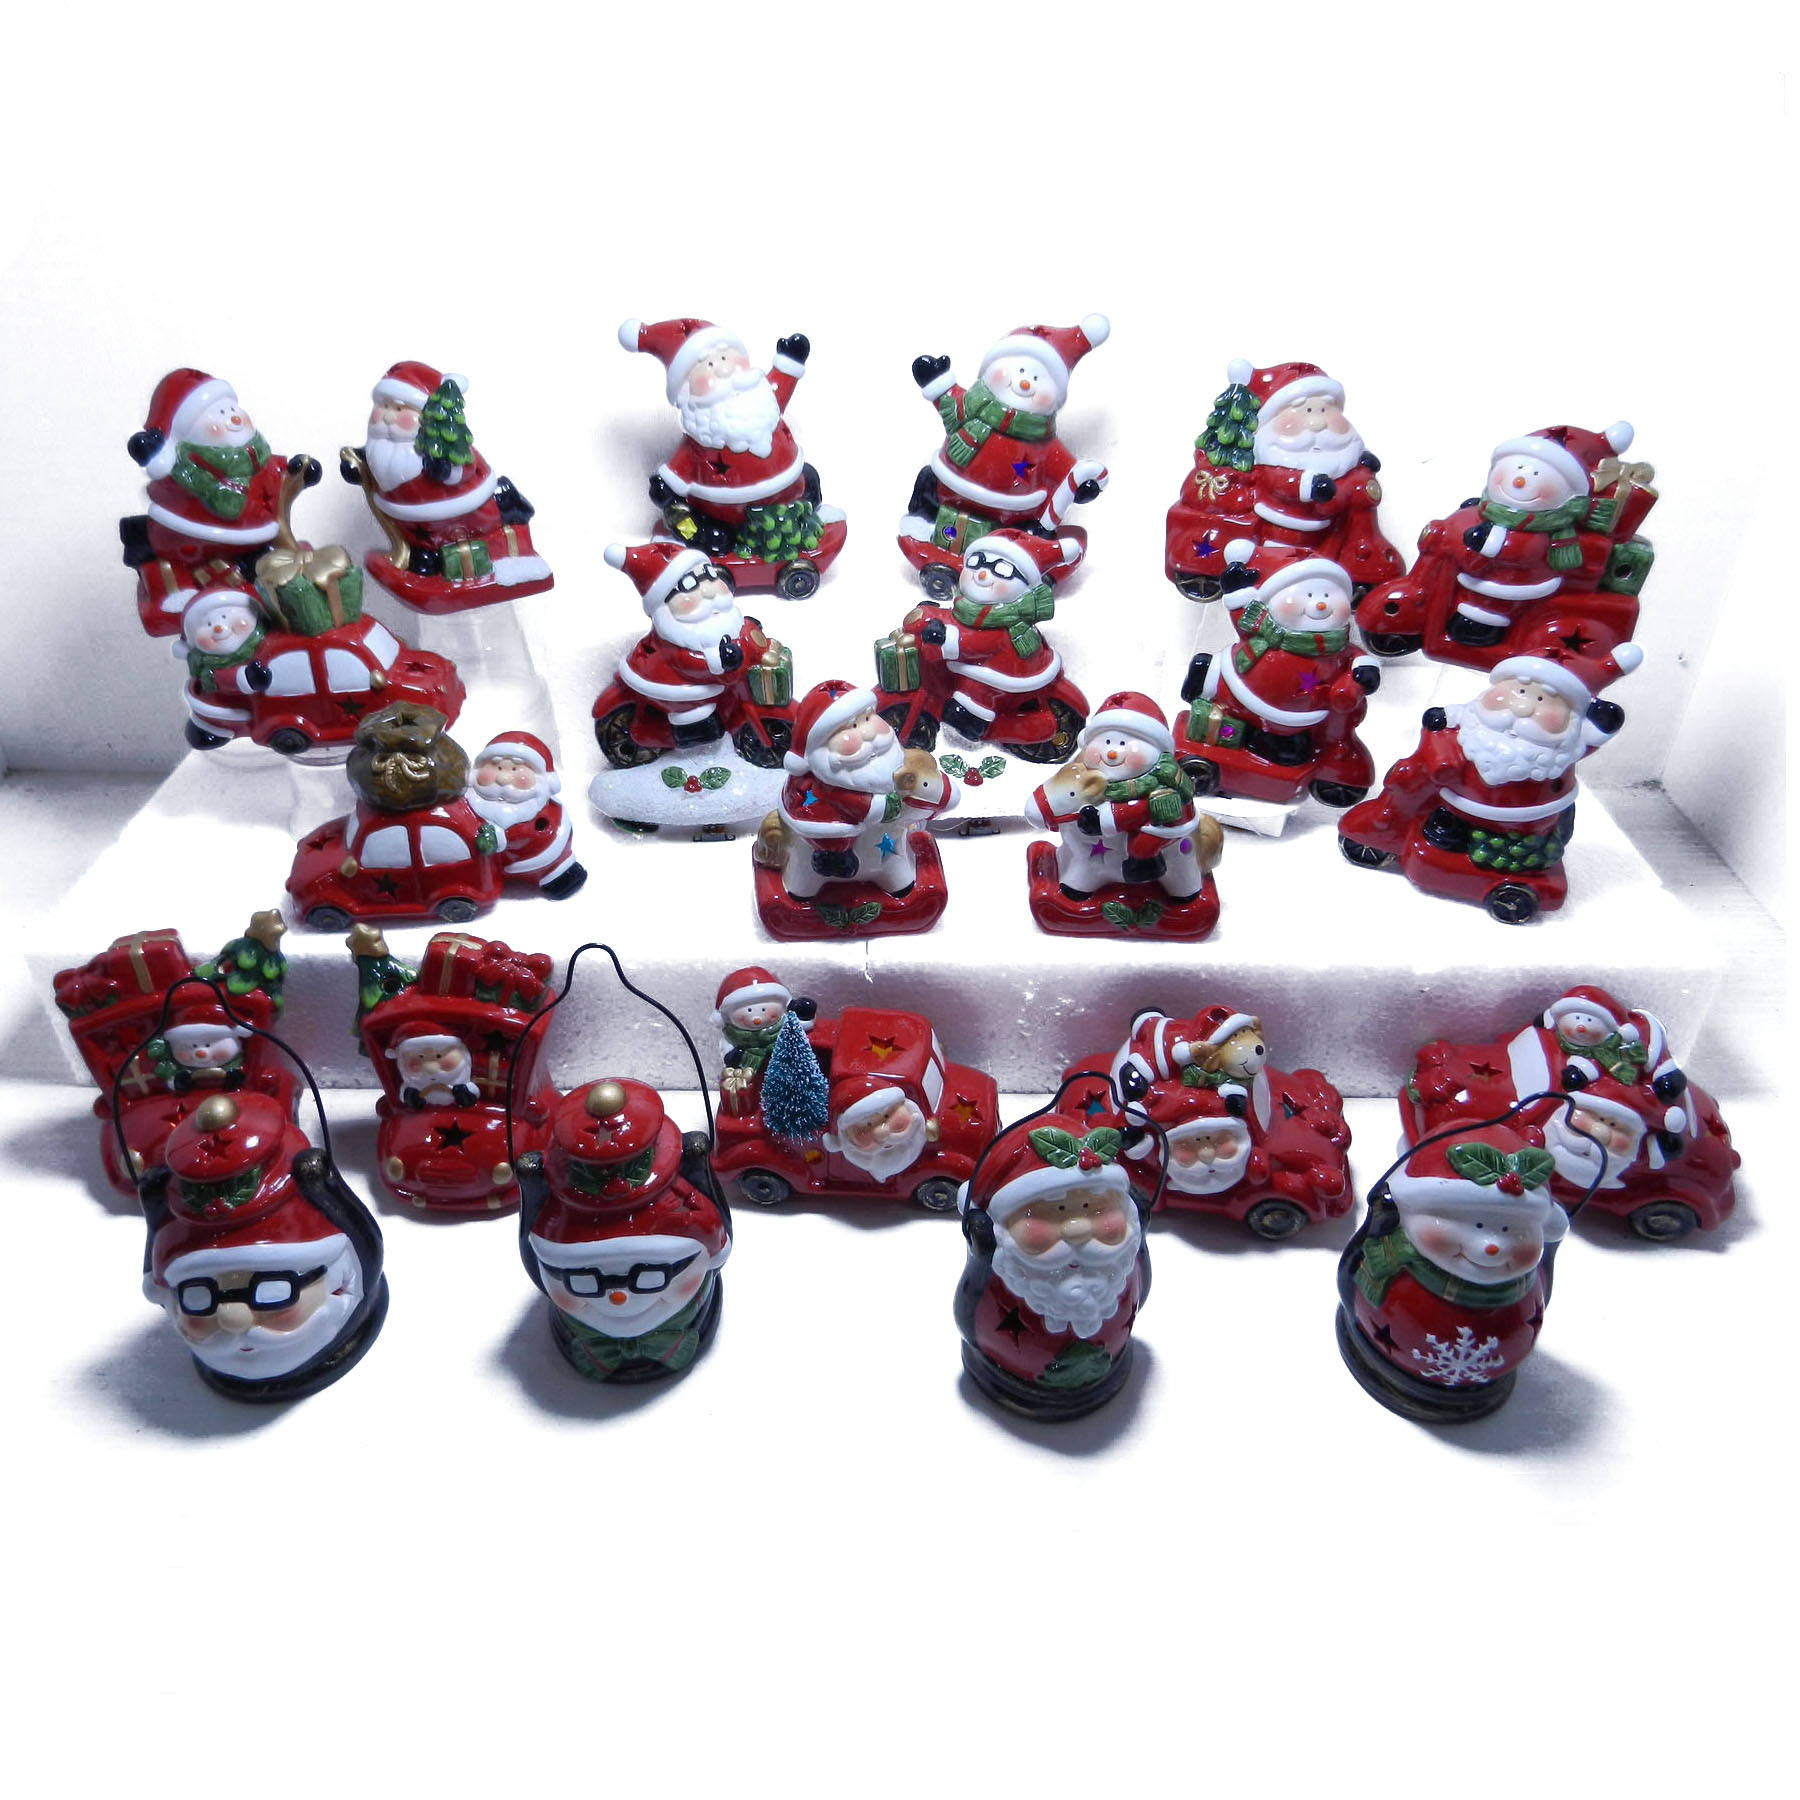 merry christmas ceramic gifts decoration ornaments supplies